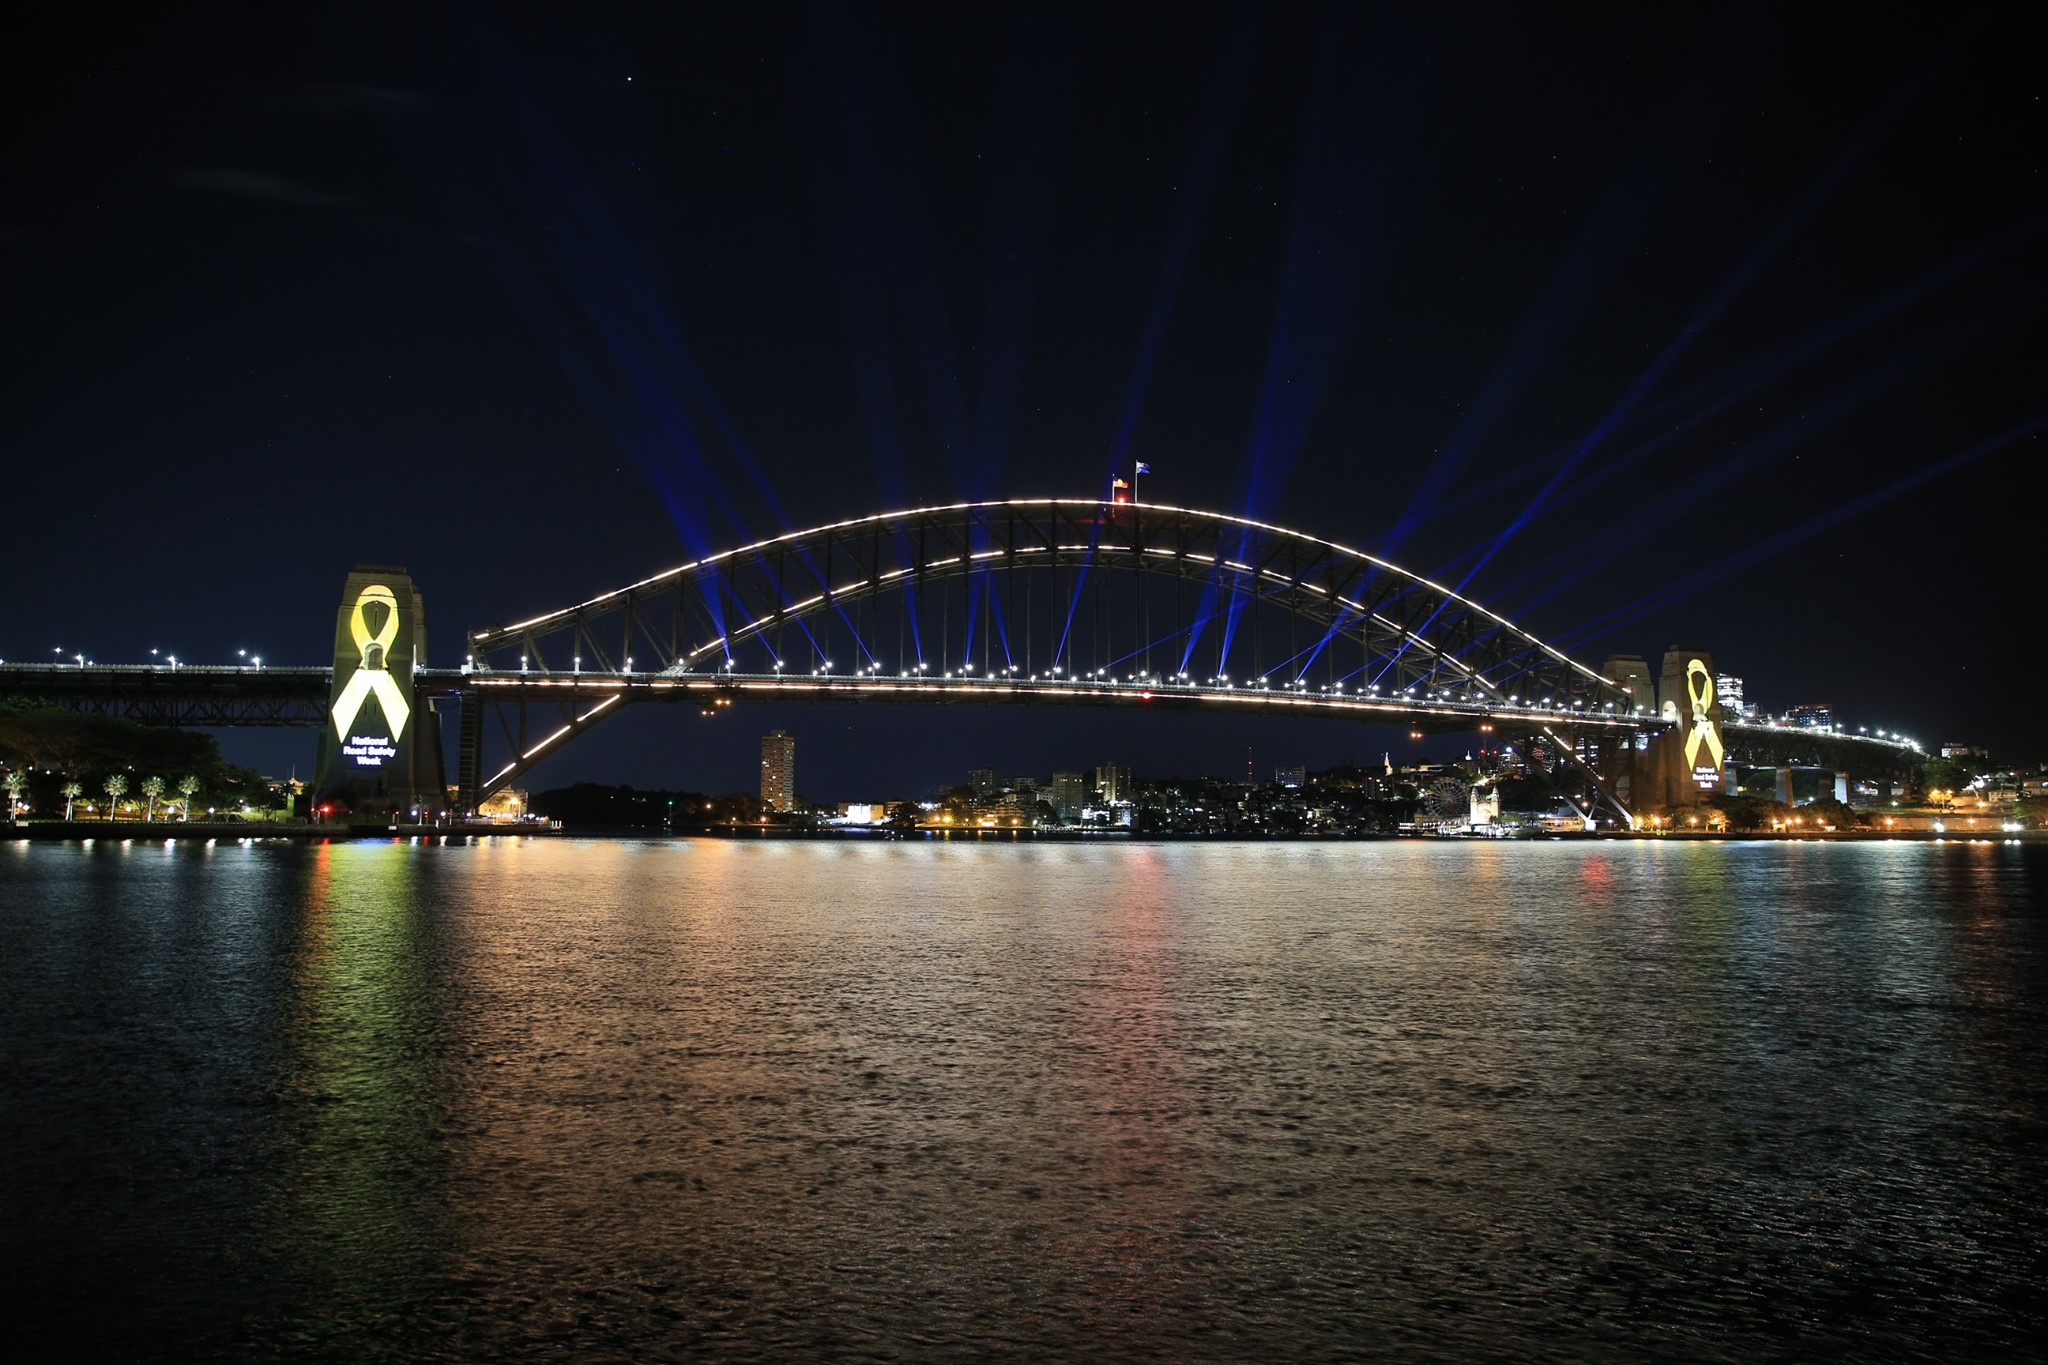 Sydney Harbour bridge lit up - Road Safety Week